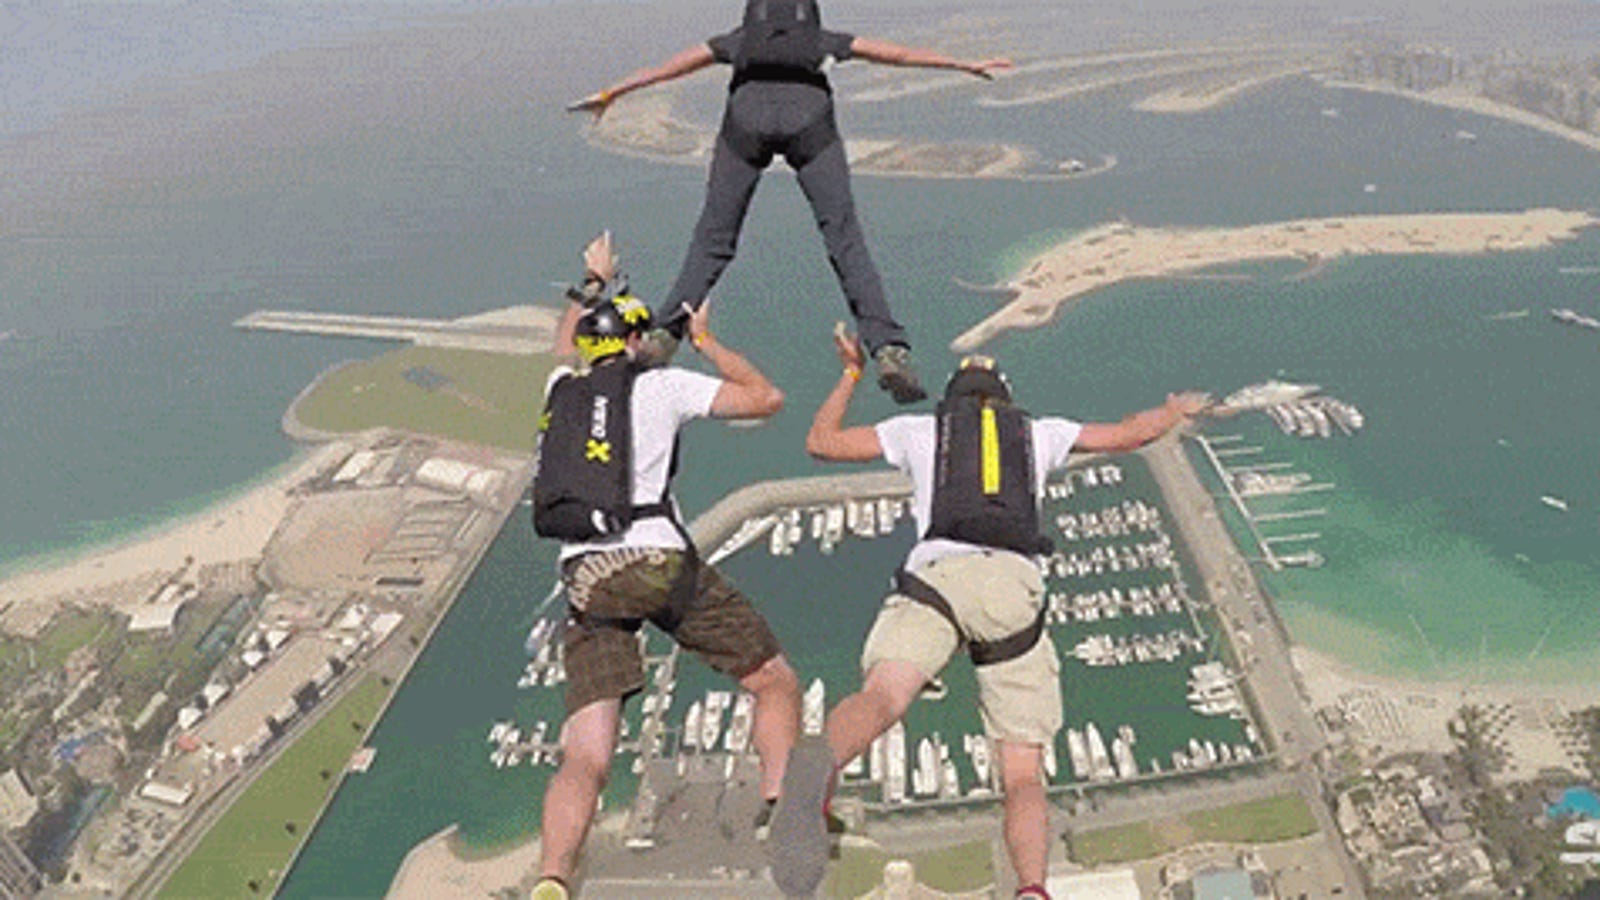 Base jumping off Dubai's tallest residential building got pretty wild